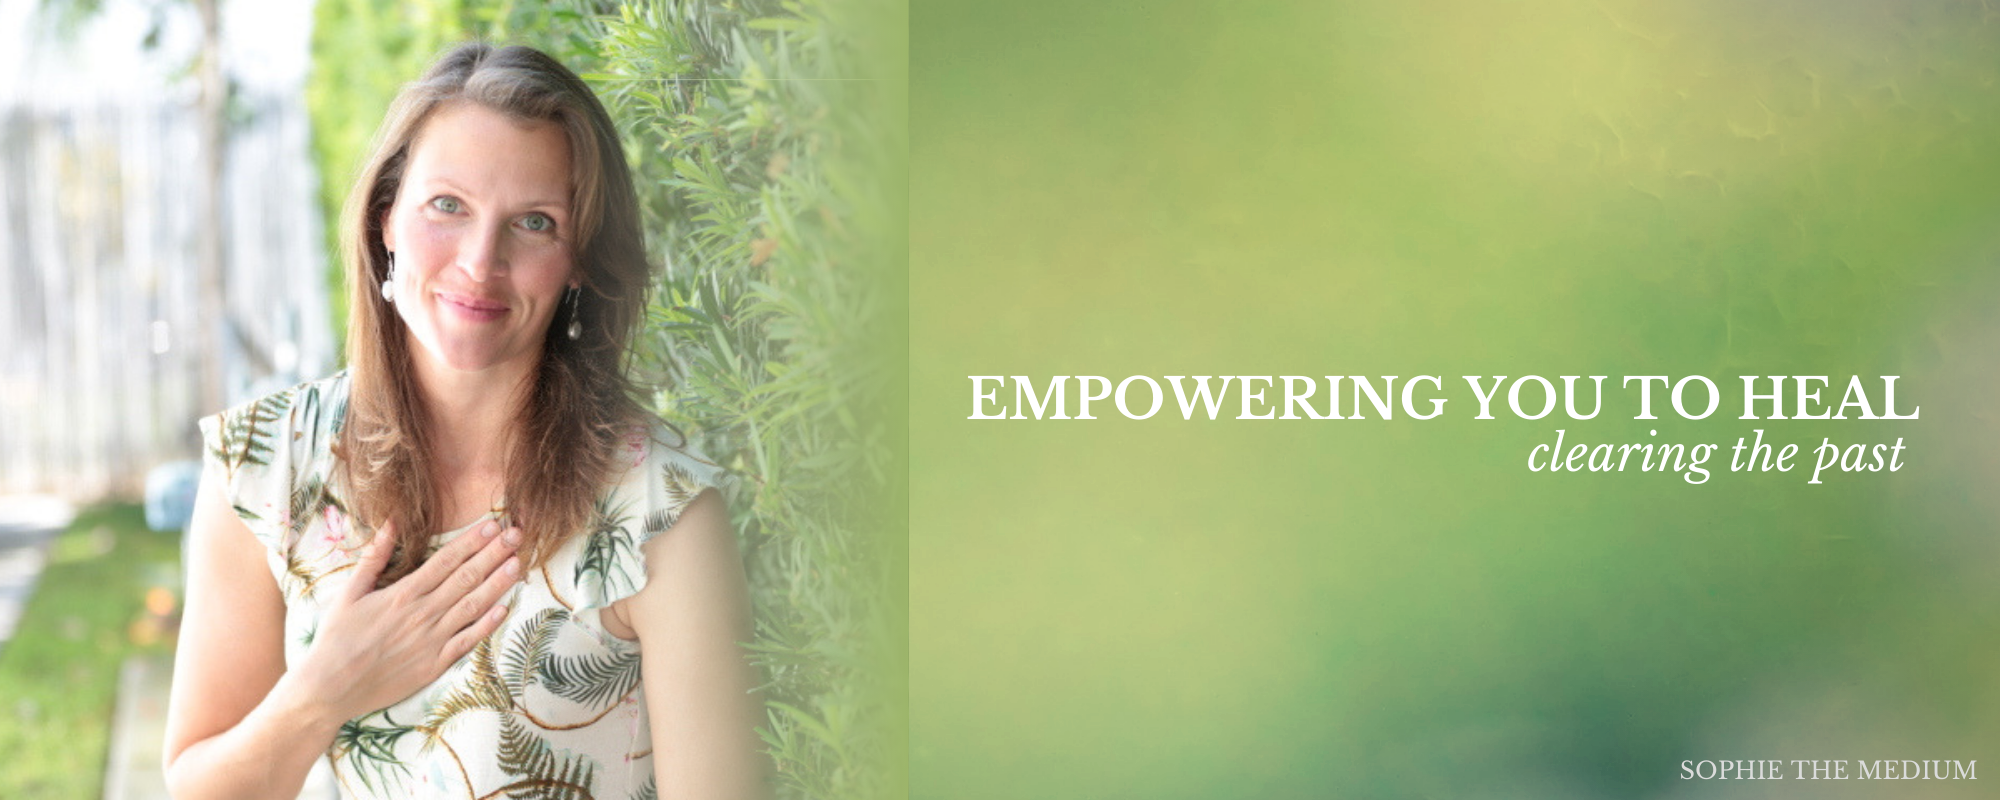 Empowering Your to Heal